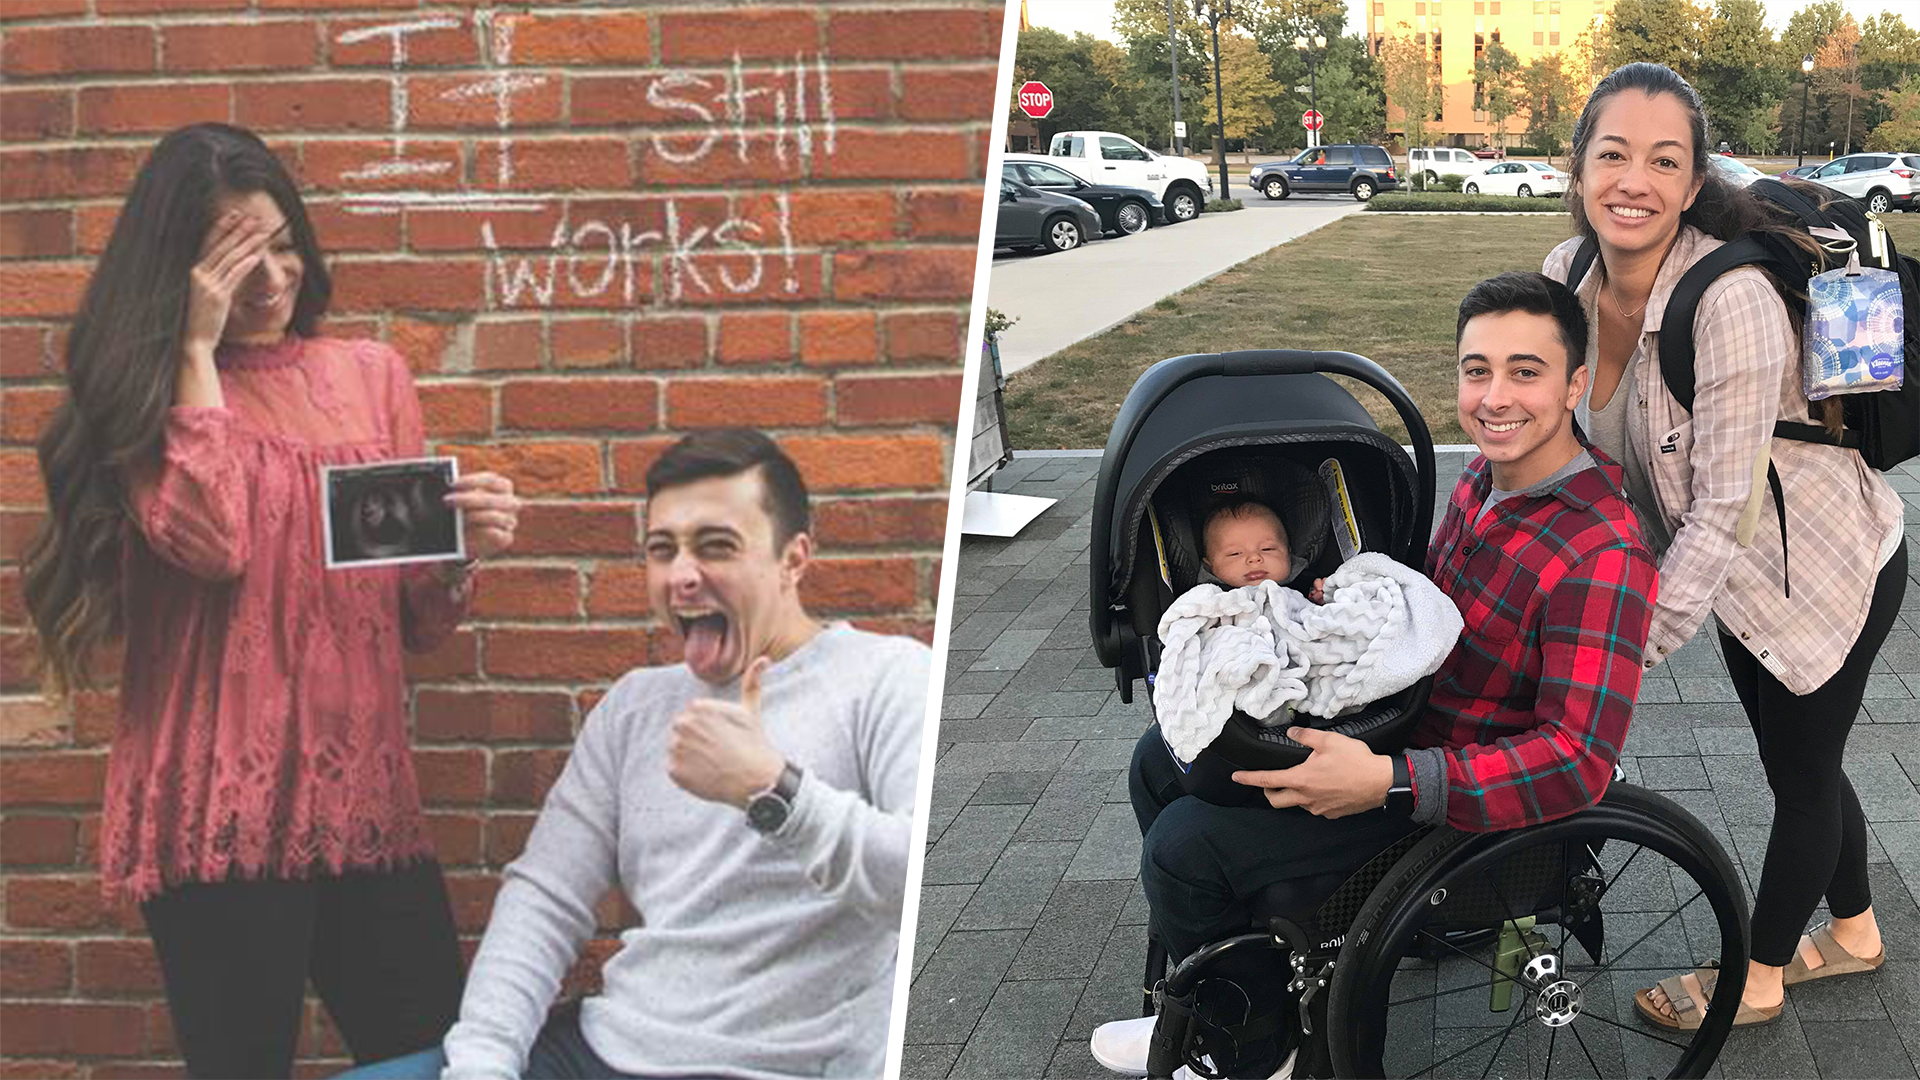 Inspiring hope: Photo goes viral of man helping mom by holding her baby